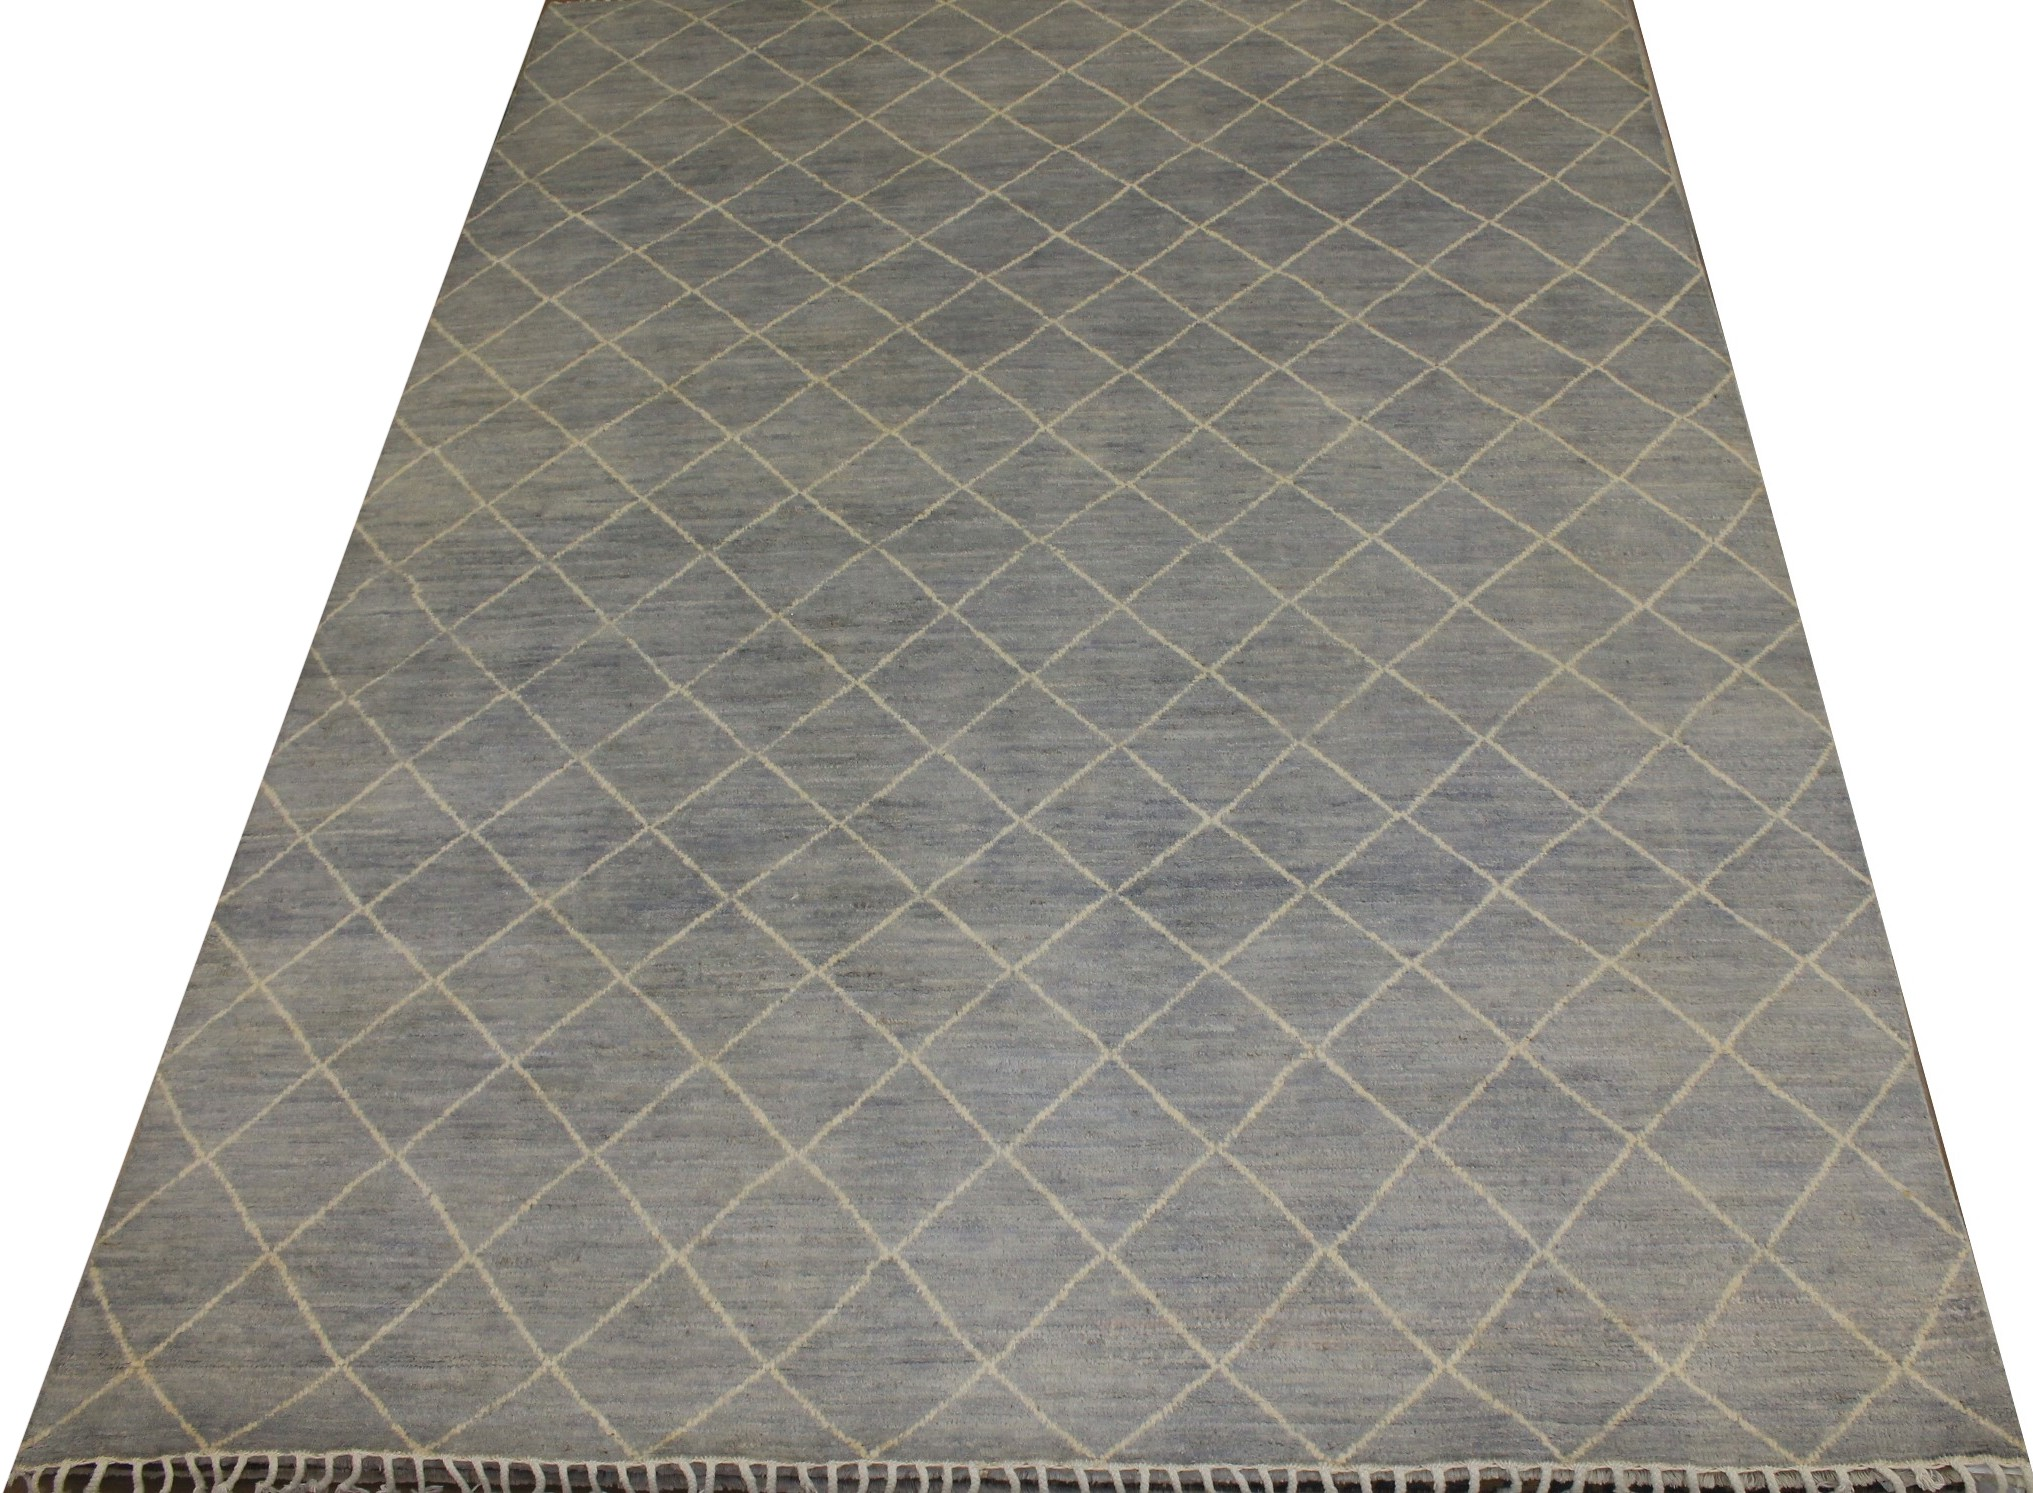 9x12 Contemporary Hand Knotted Wool Area Rug - MR021497